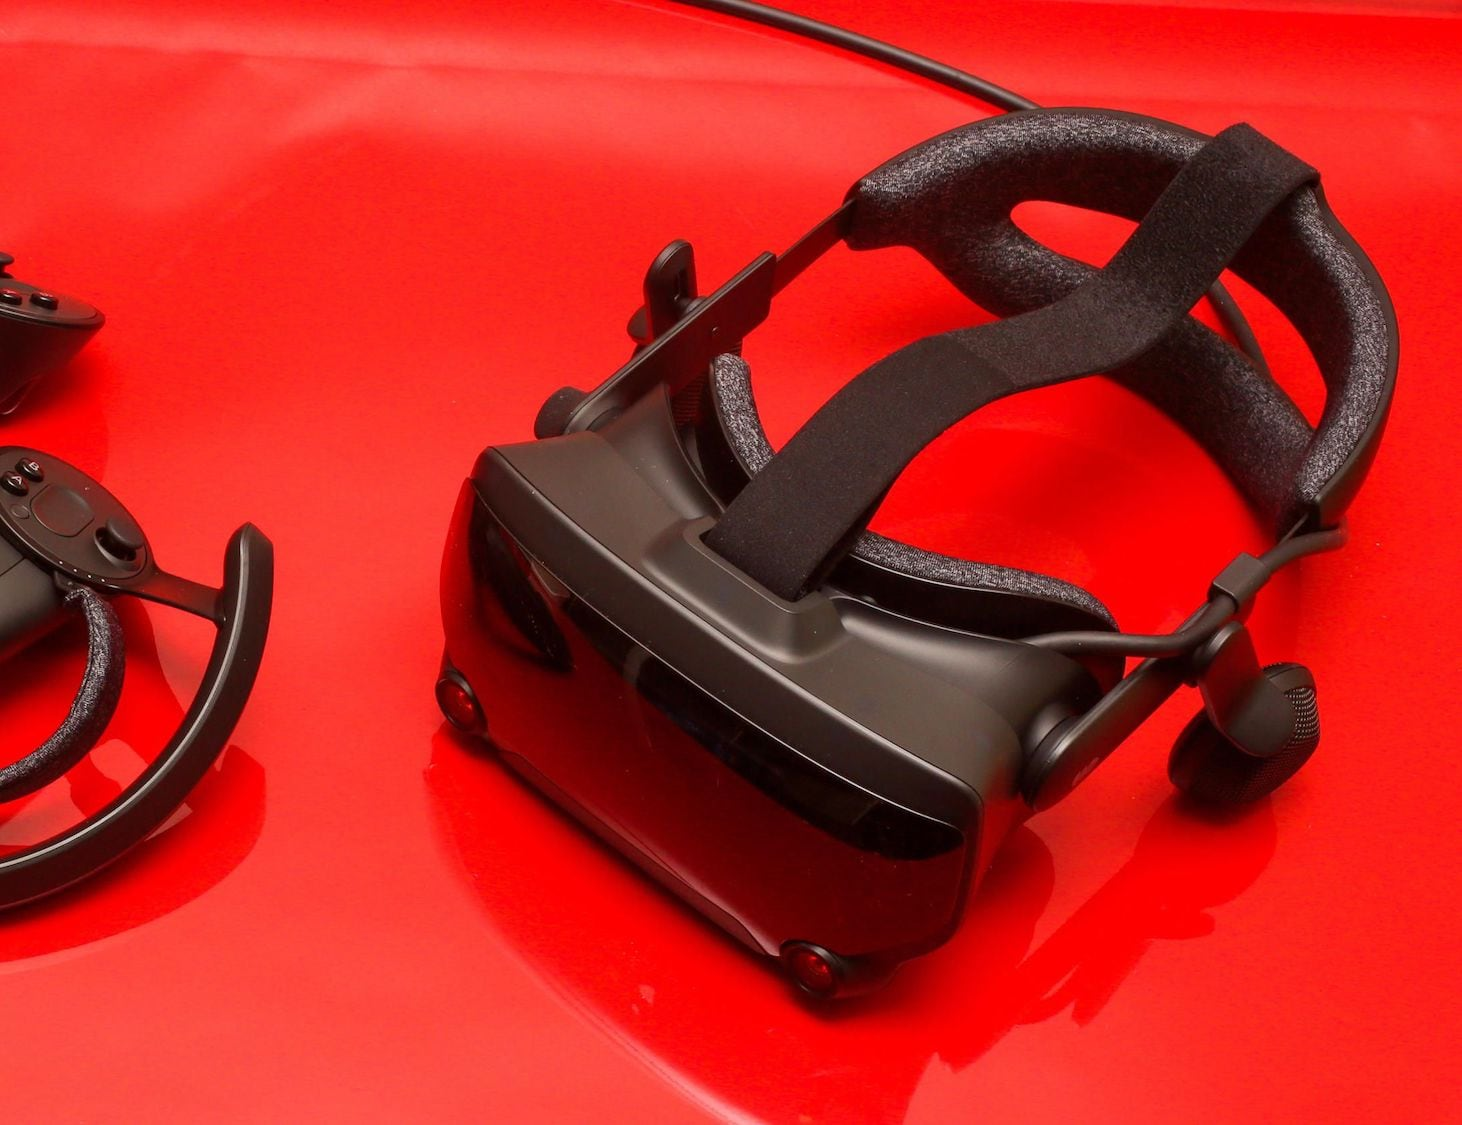 Valve Index Ergonomically Designed VR Headset was created with comfort in mind